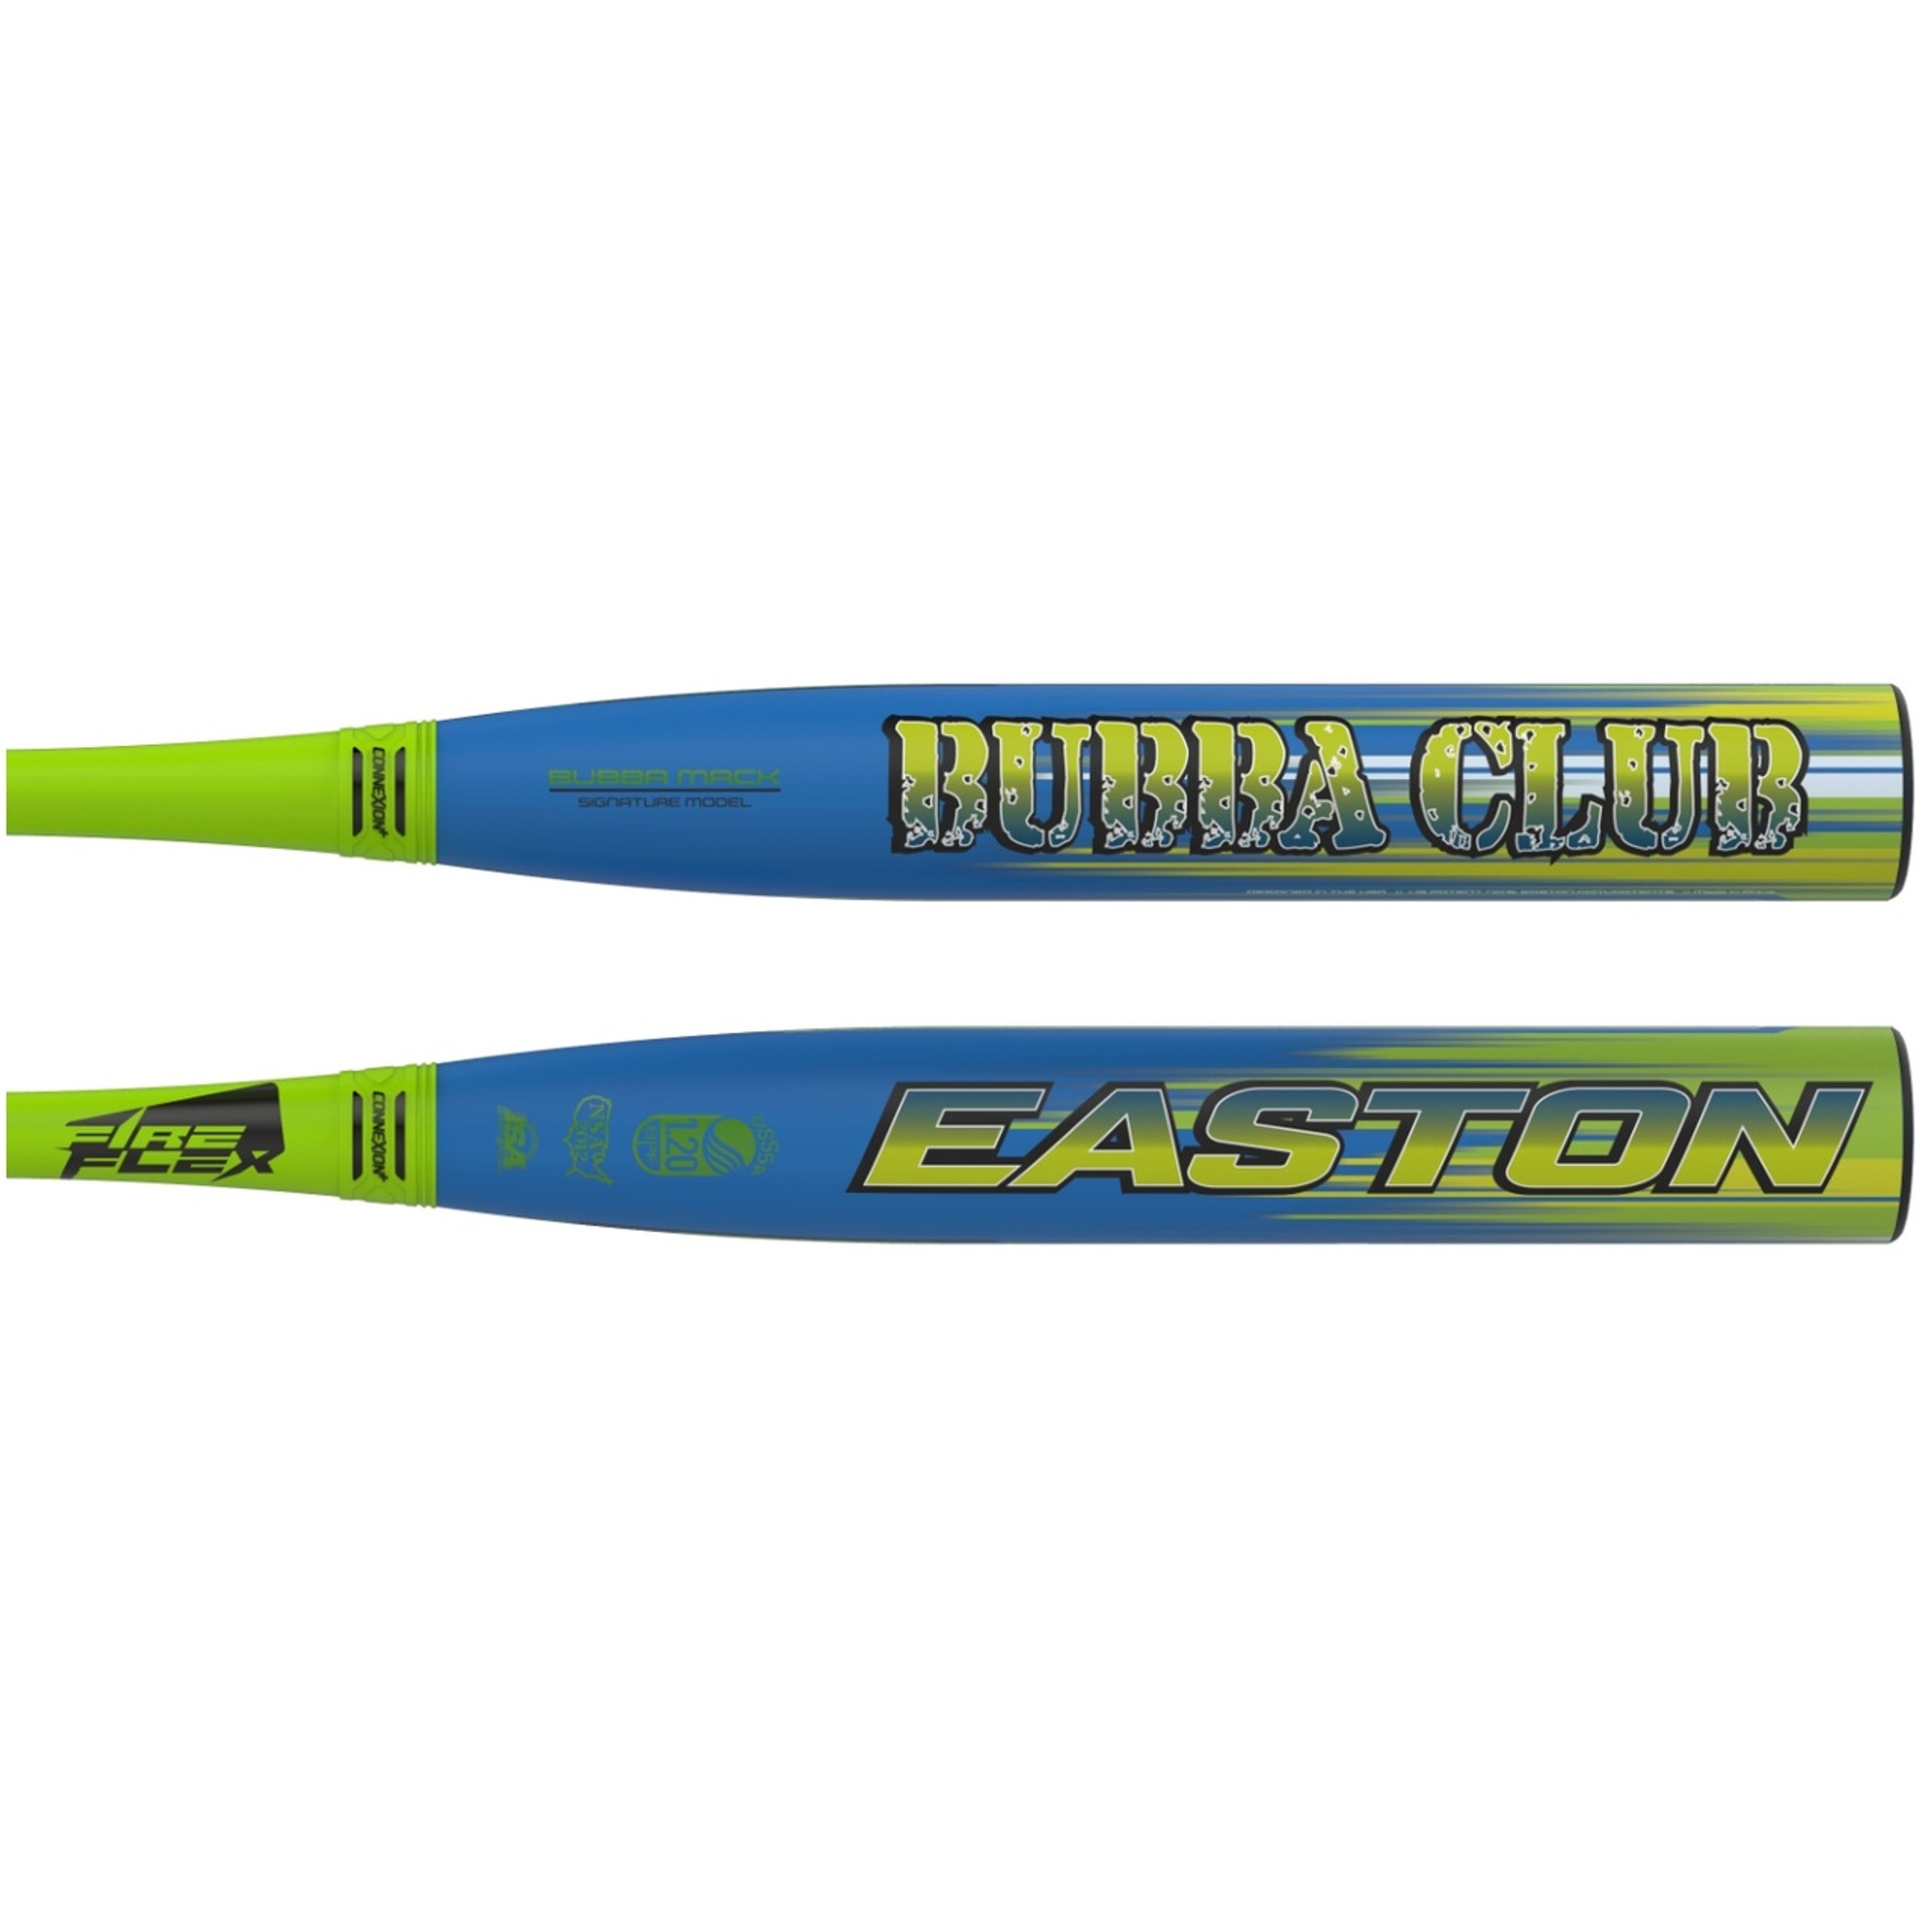 2018 Easton Fire Flex Bubba Club 10″ USSSA Slowpitch Softball Bat SP18BUB